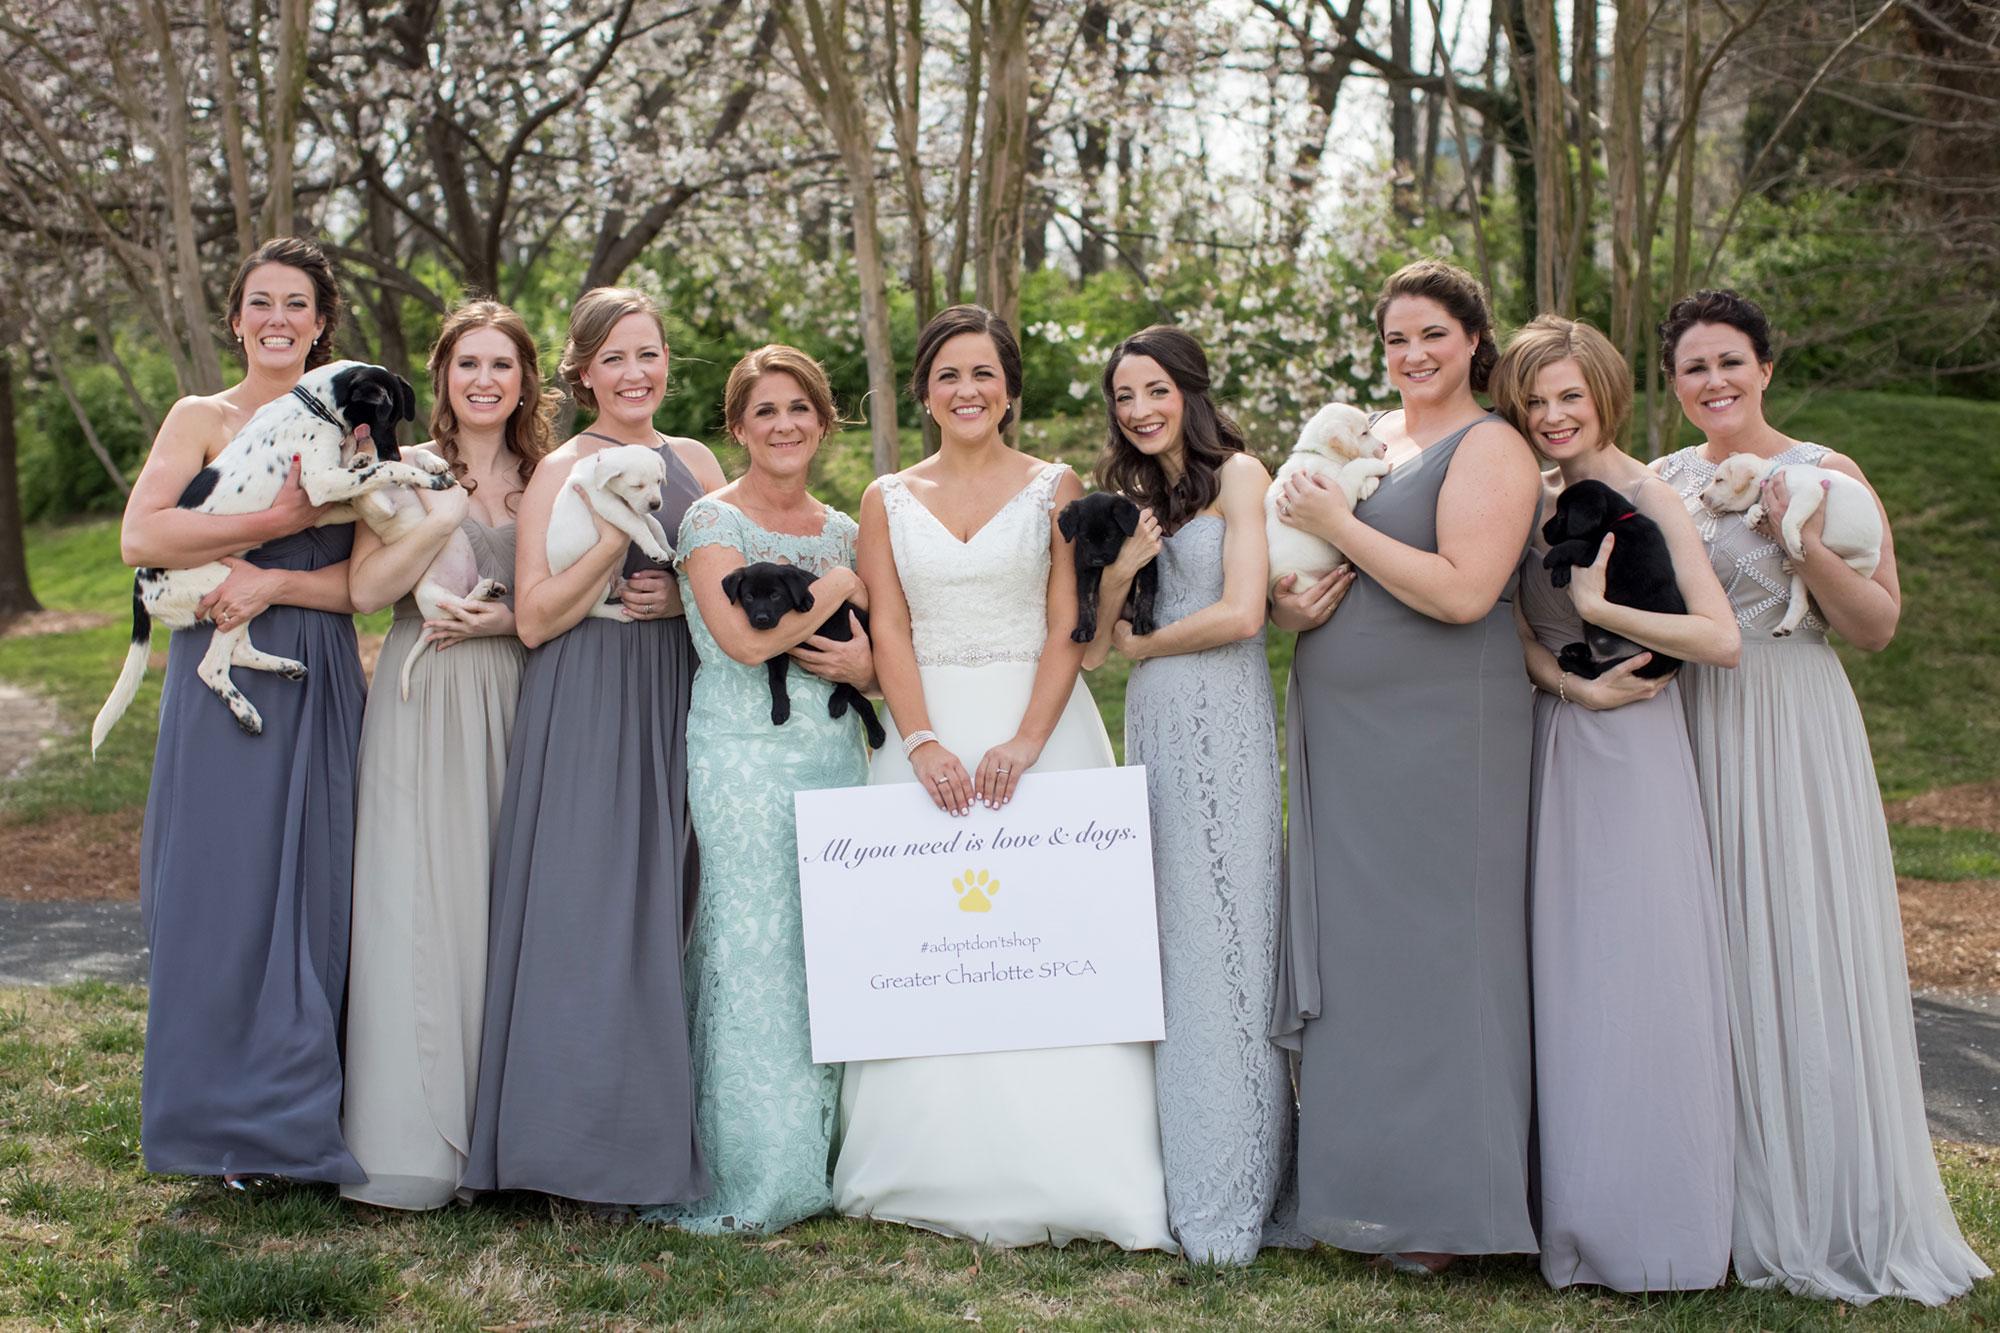 Charlotte Bridal Party Swaps Bouquets for Adoptable Puppies in Most Adorable Wedding Ever